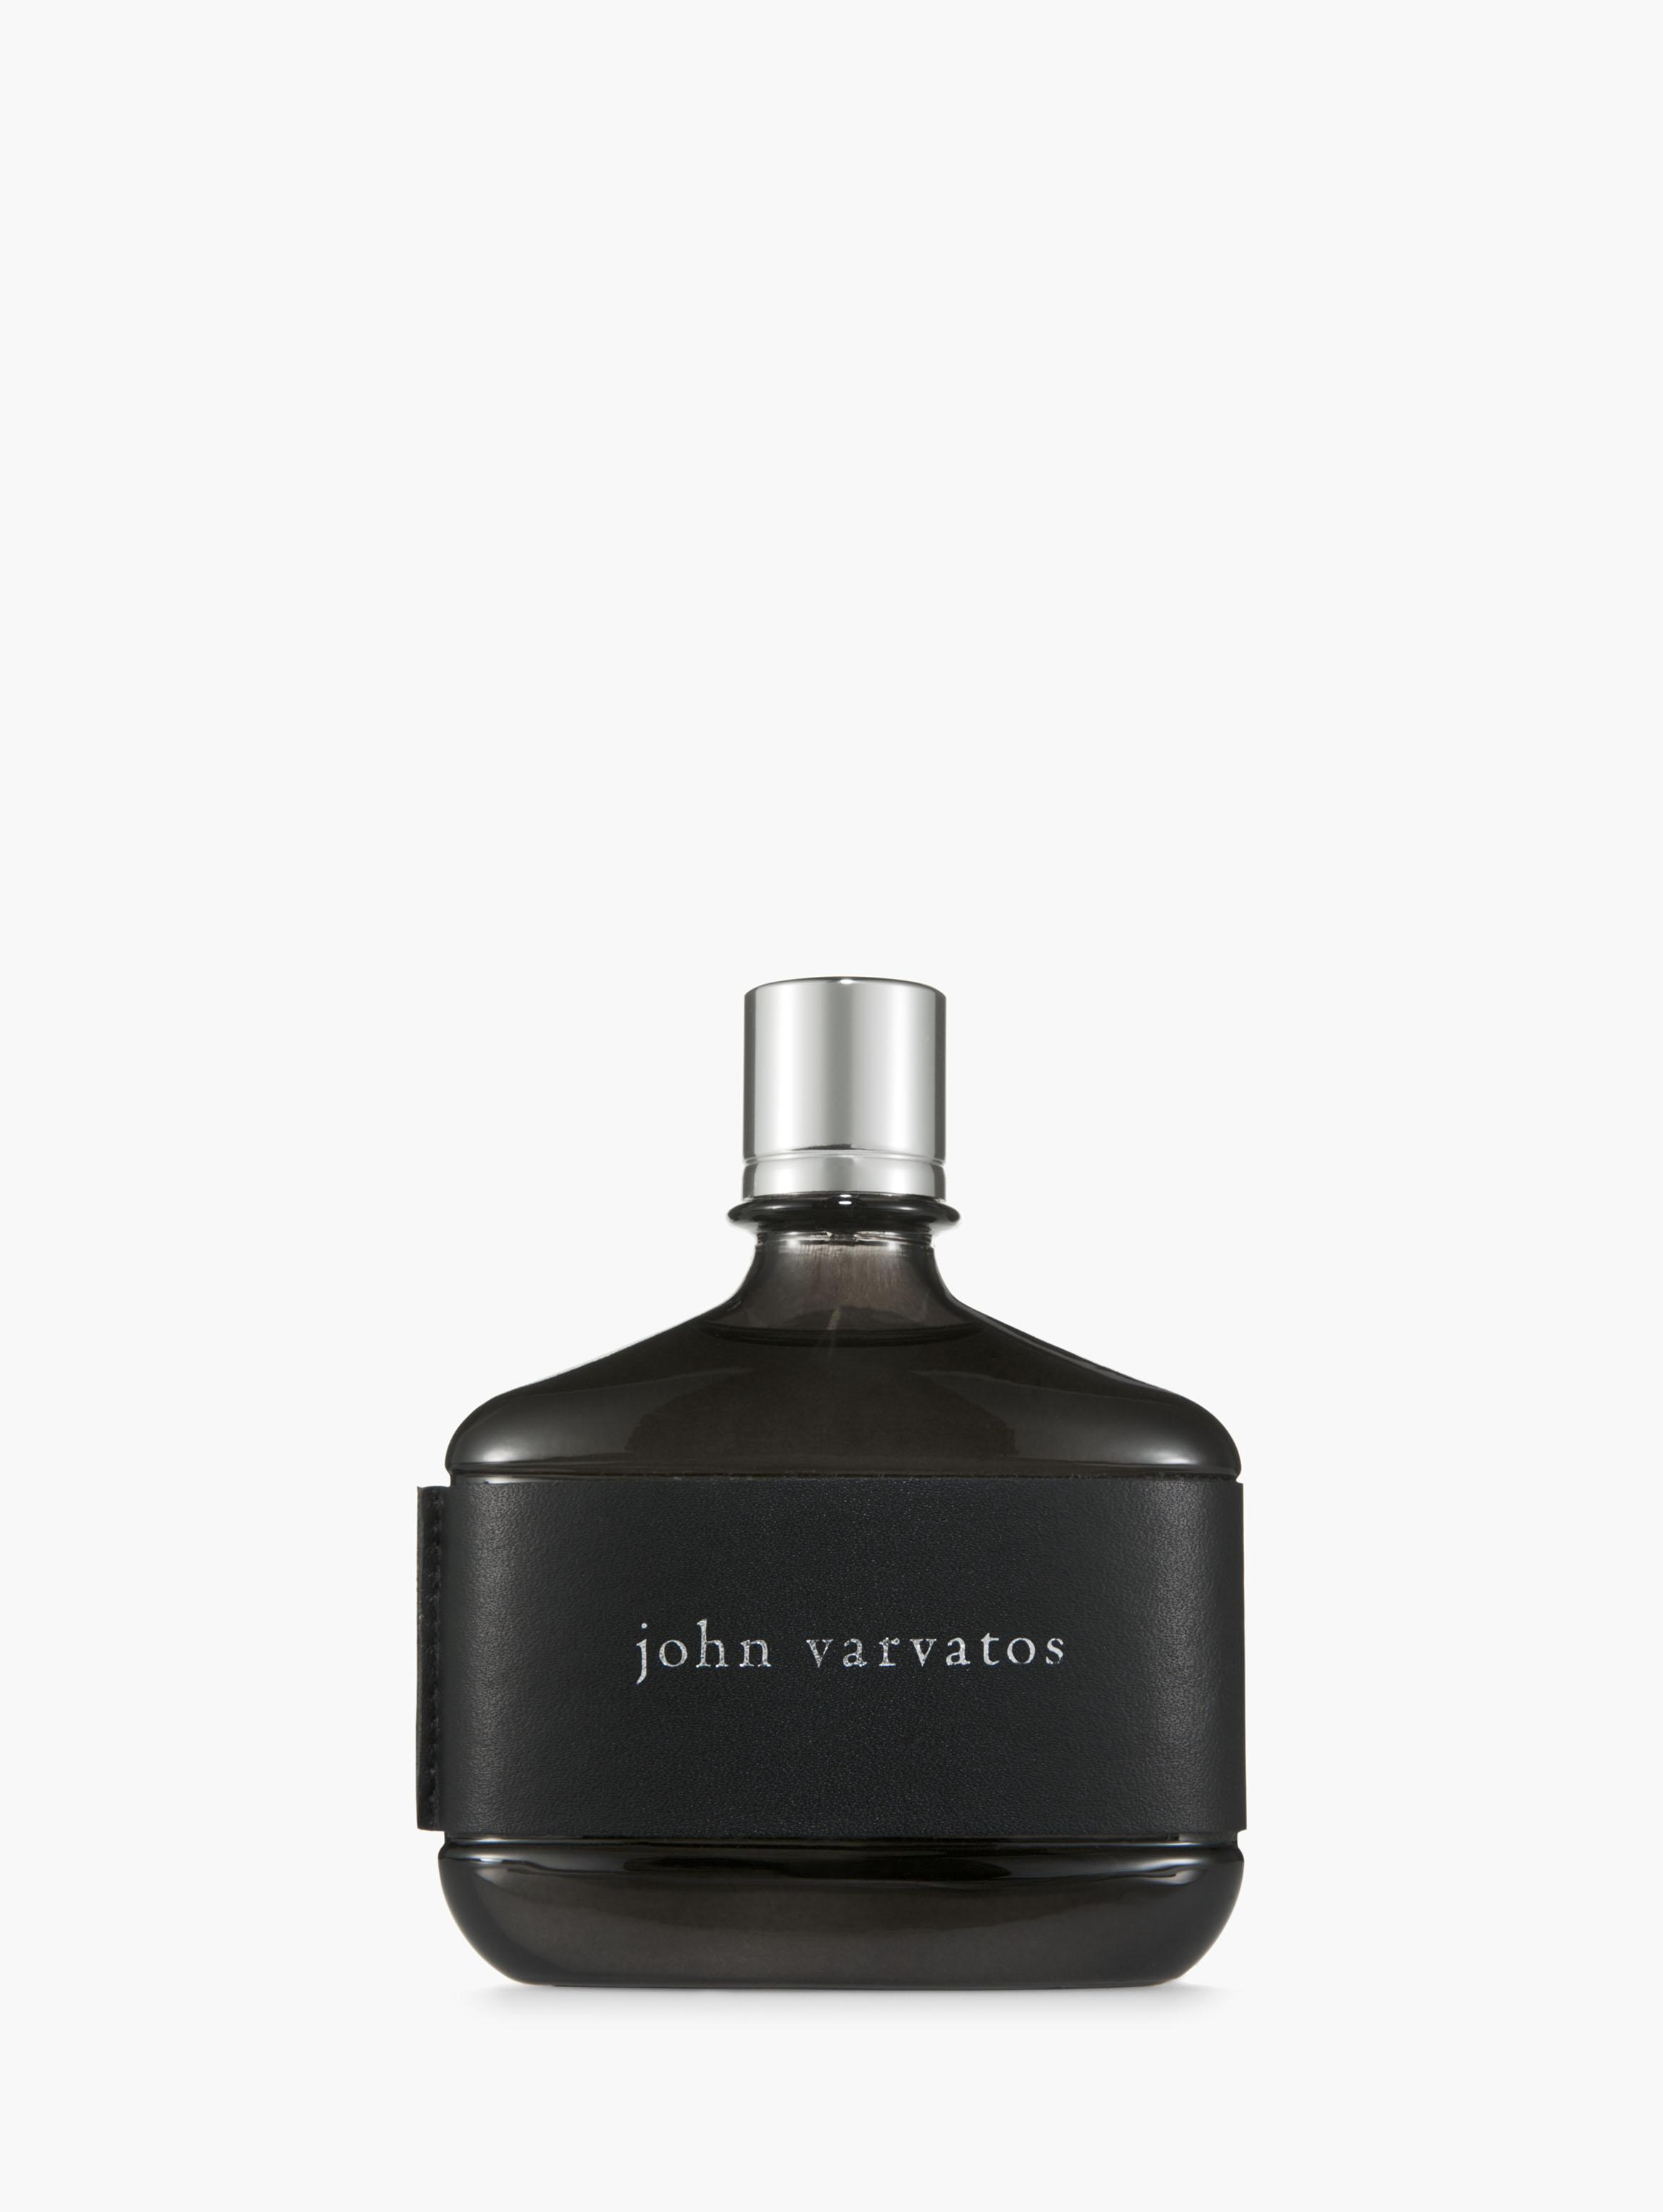 John Varvatos Fragrance 4.2 oz